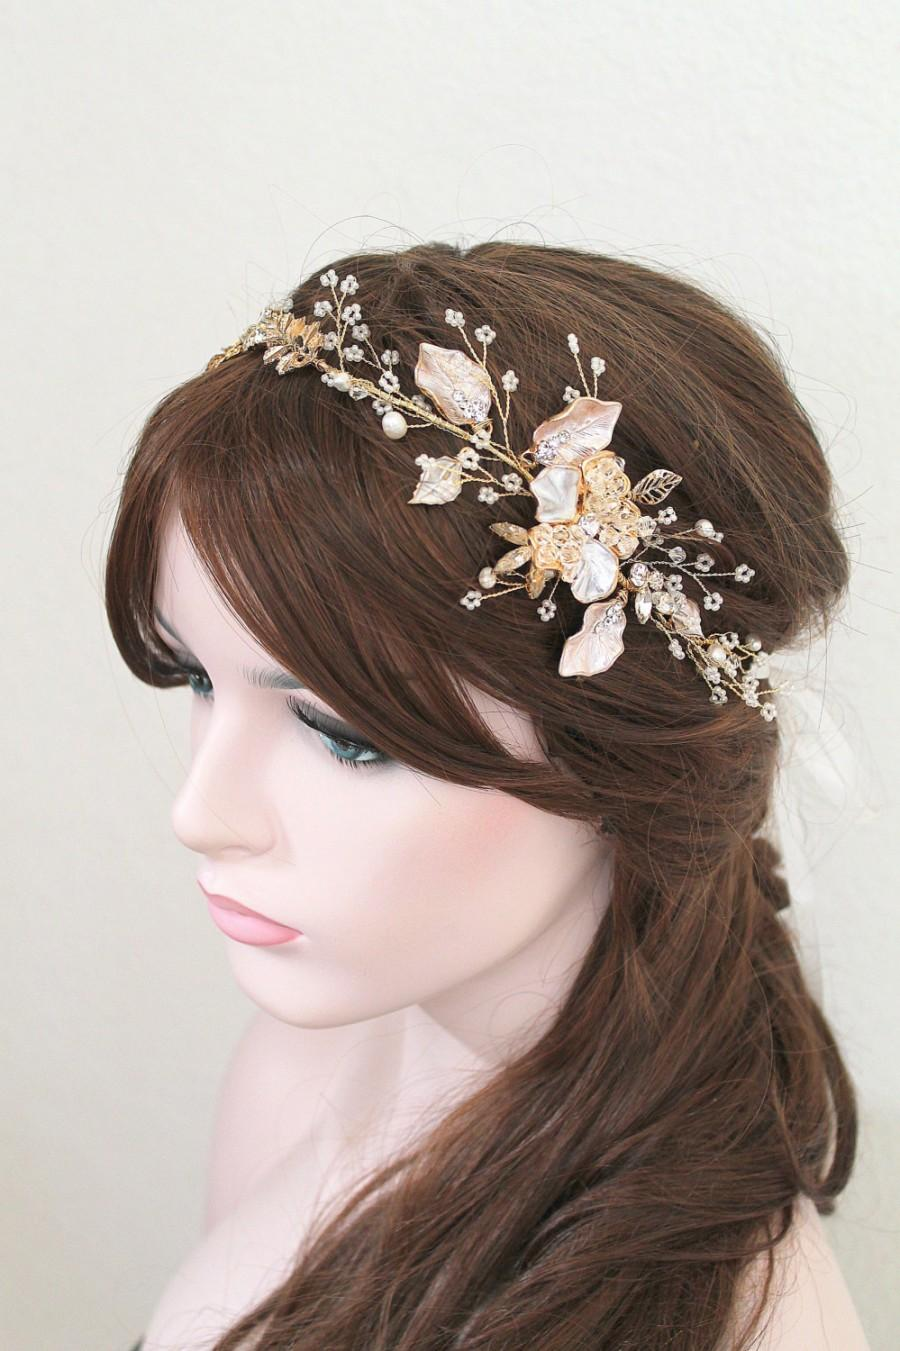 Wedding - Gold or Rose gold Leaf Vine Bridal Headpiece. Blush Boho Delicate Crystal Pearl wedding Wreath, Headband. Rhinestone Floral Hairpiece. BEA